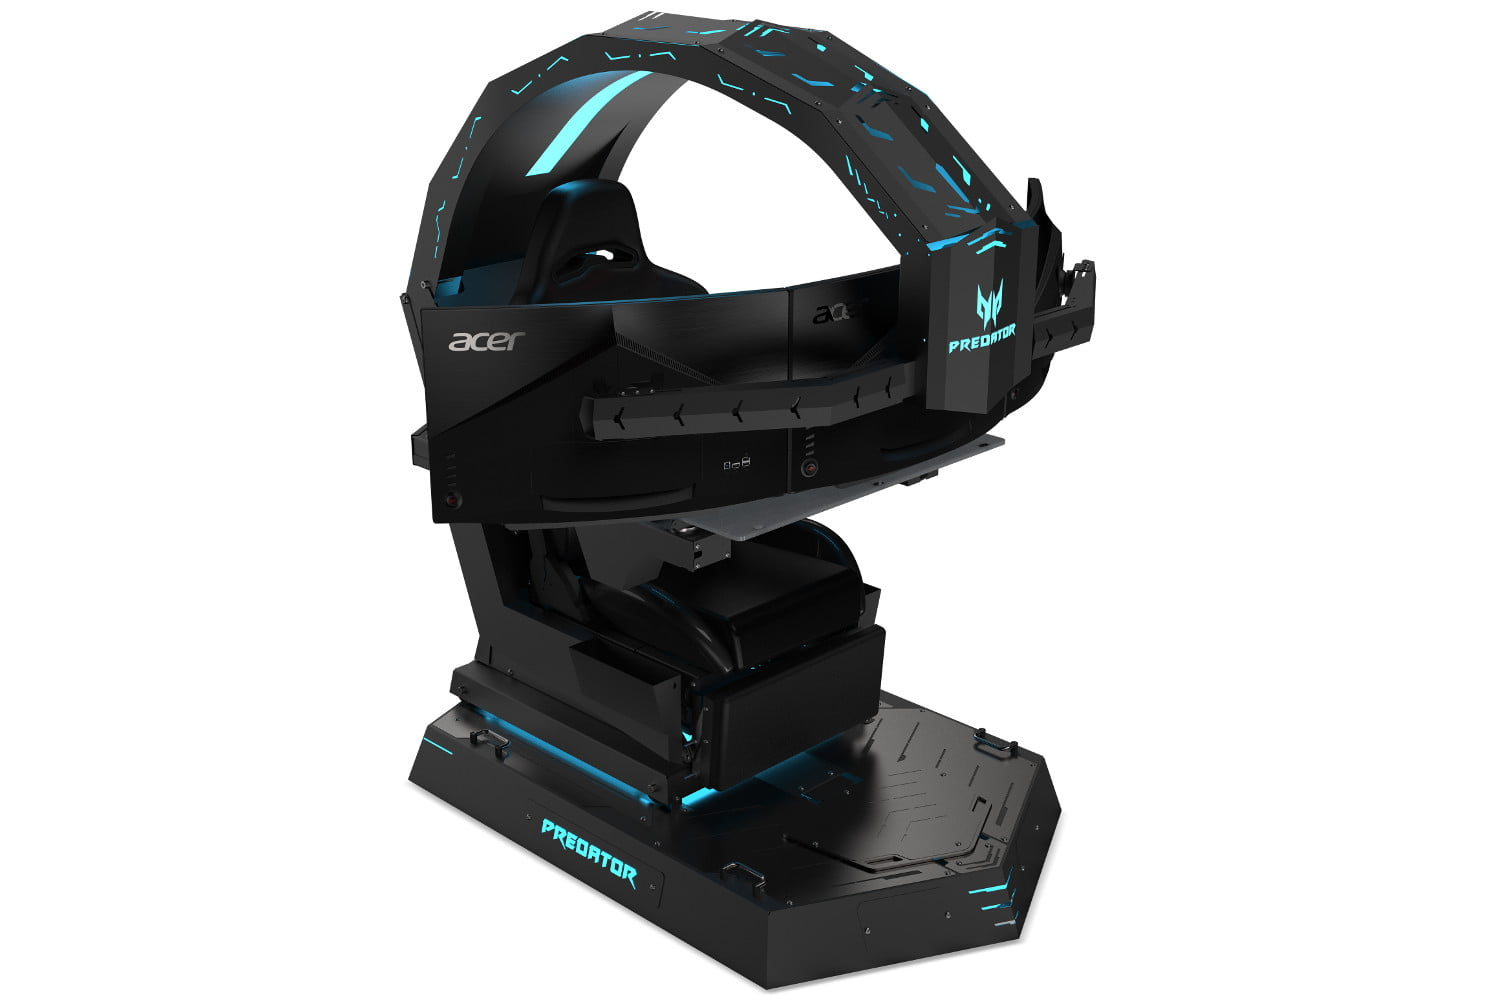 desktop gaming chair high back ribbed office acer s new predator is titanic holds three displays and a thronos